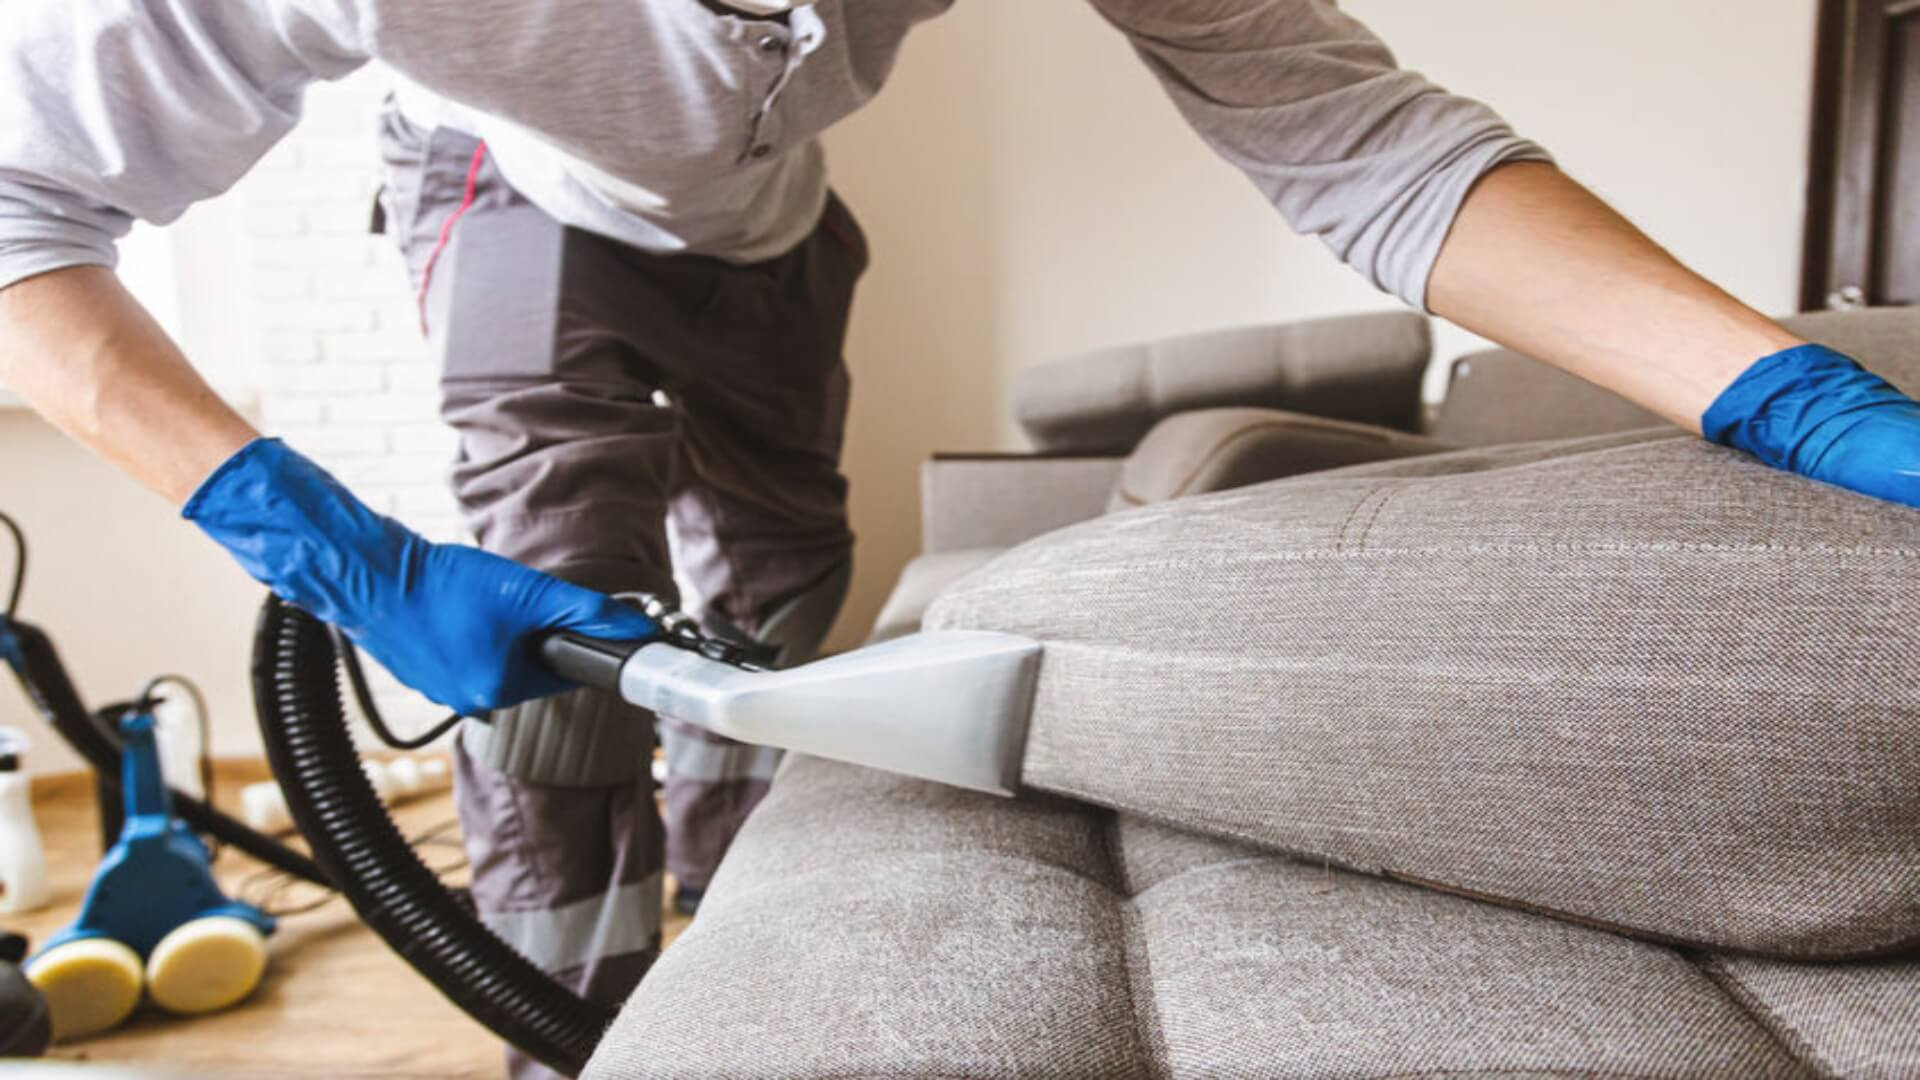 Professional and deep cleaning of upholstery in Abingdon, Oxford and the surrounding area